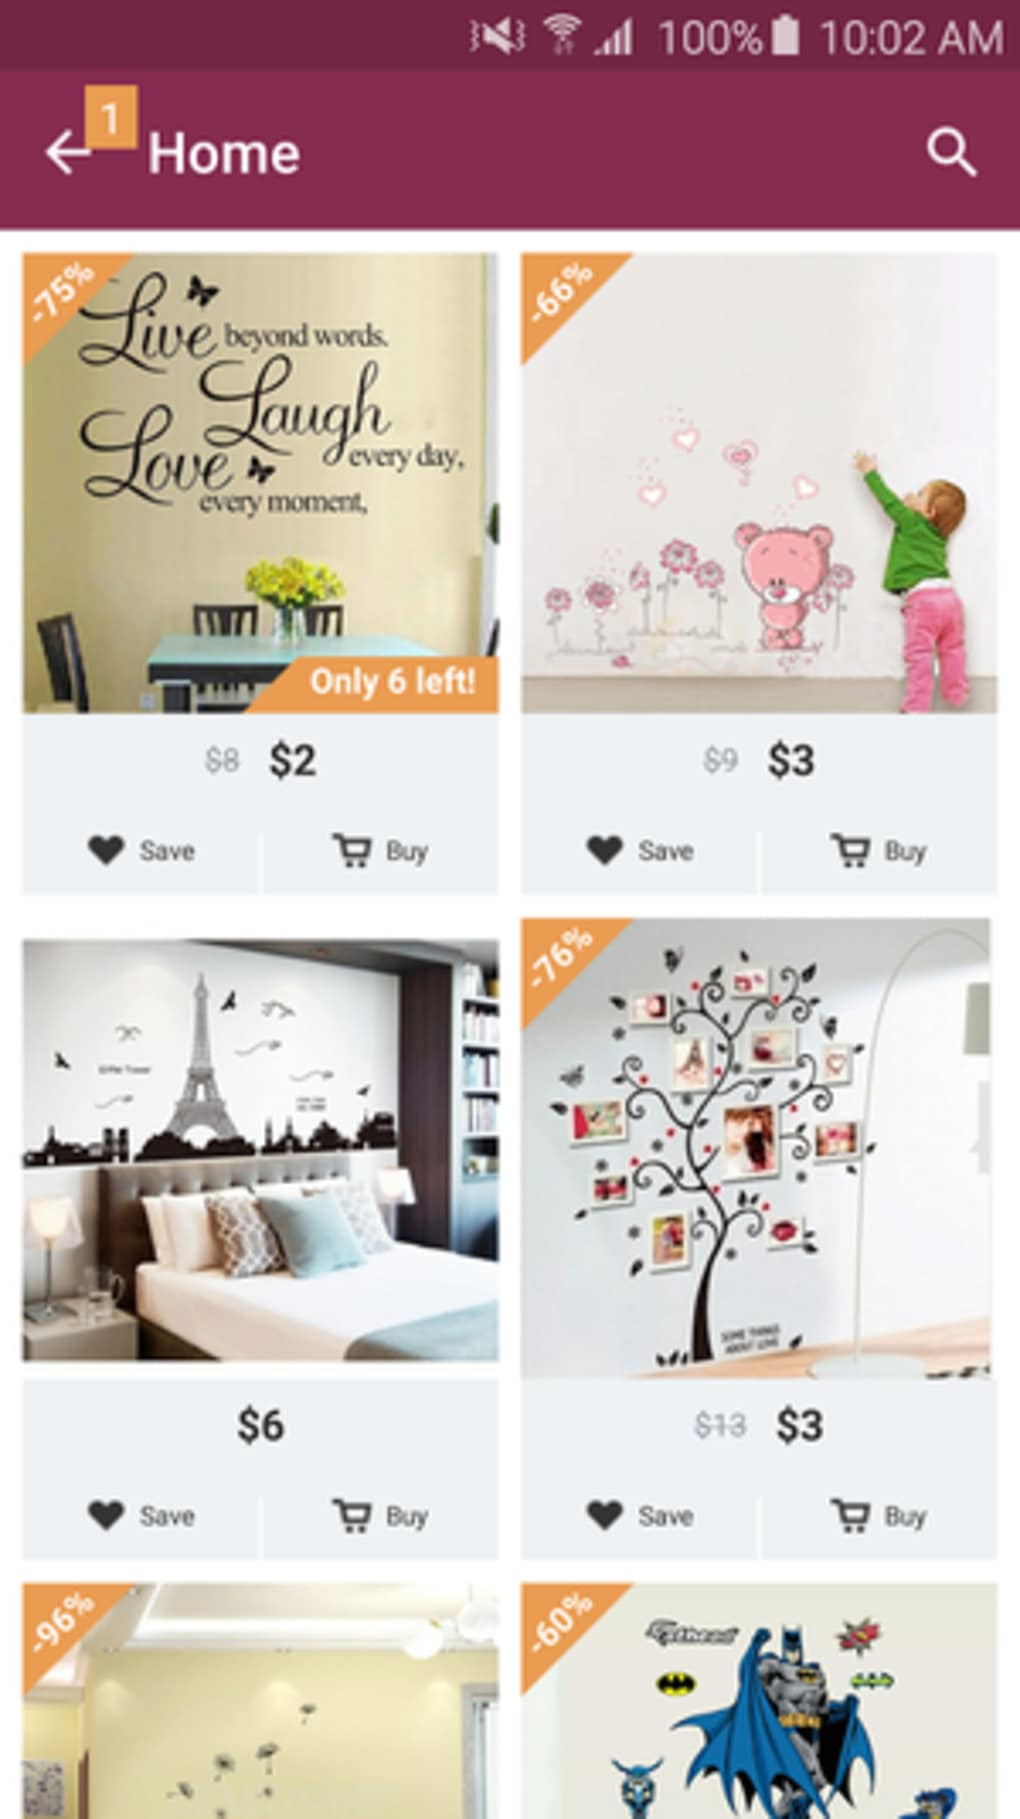 Home - Design & Decor Shopping for iPhone - Download